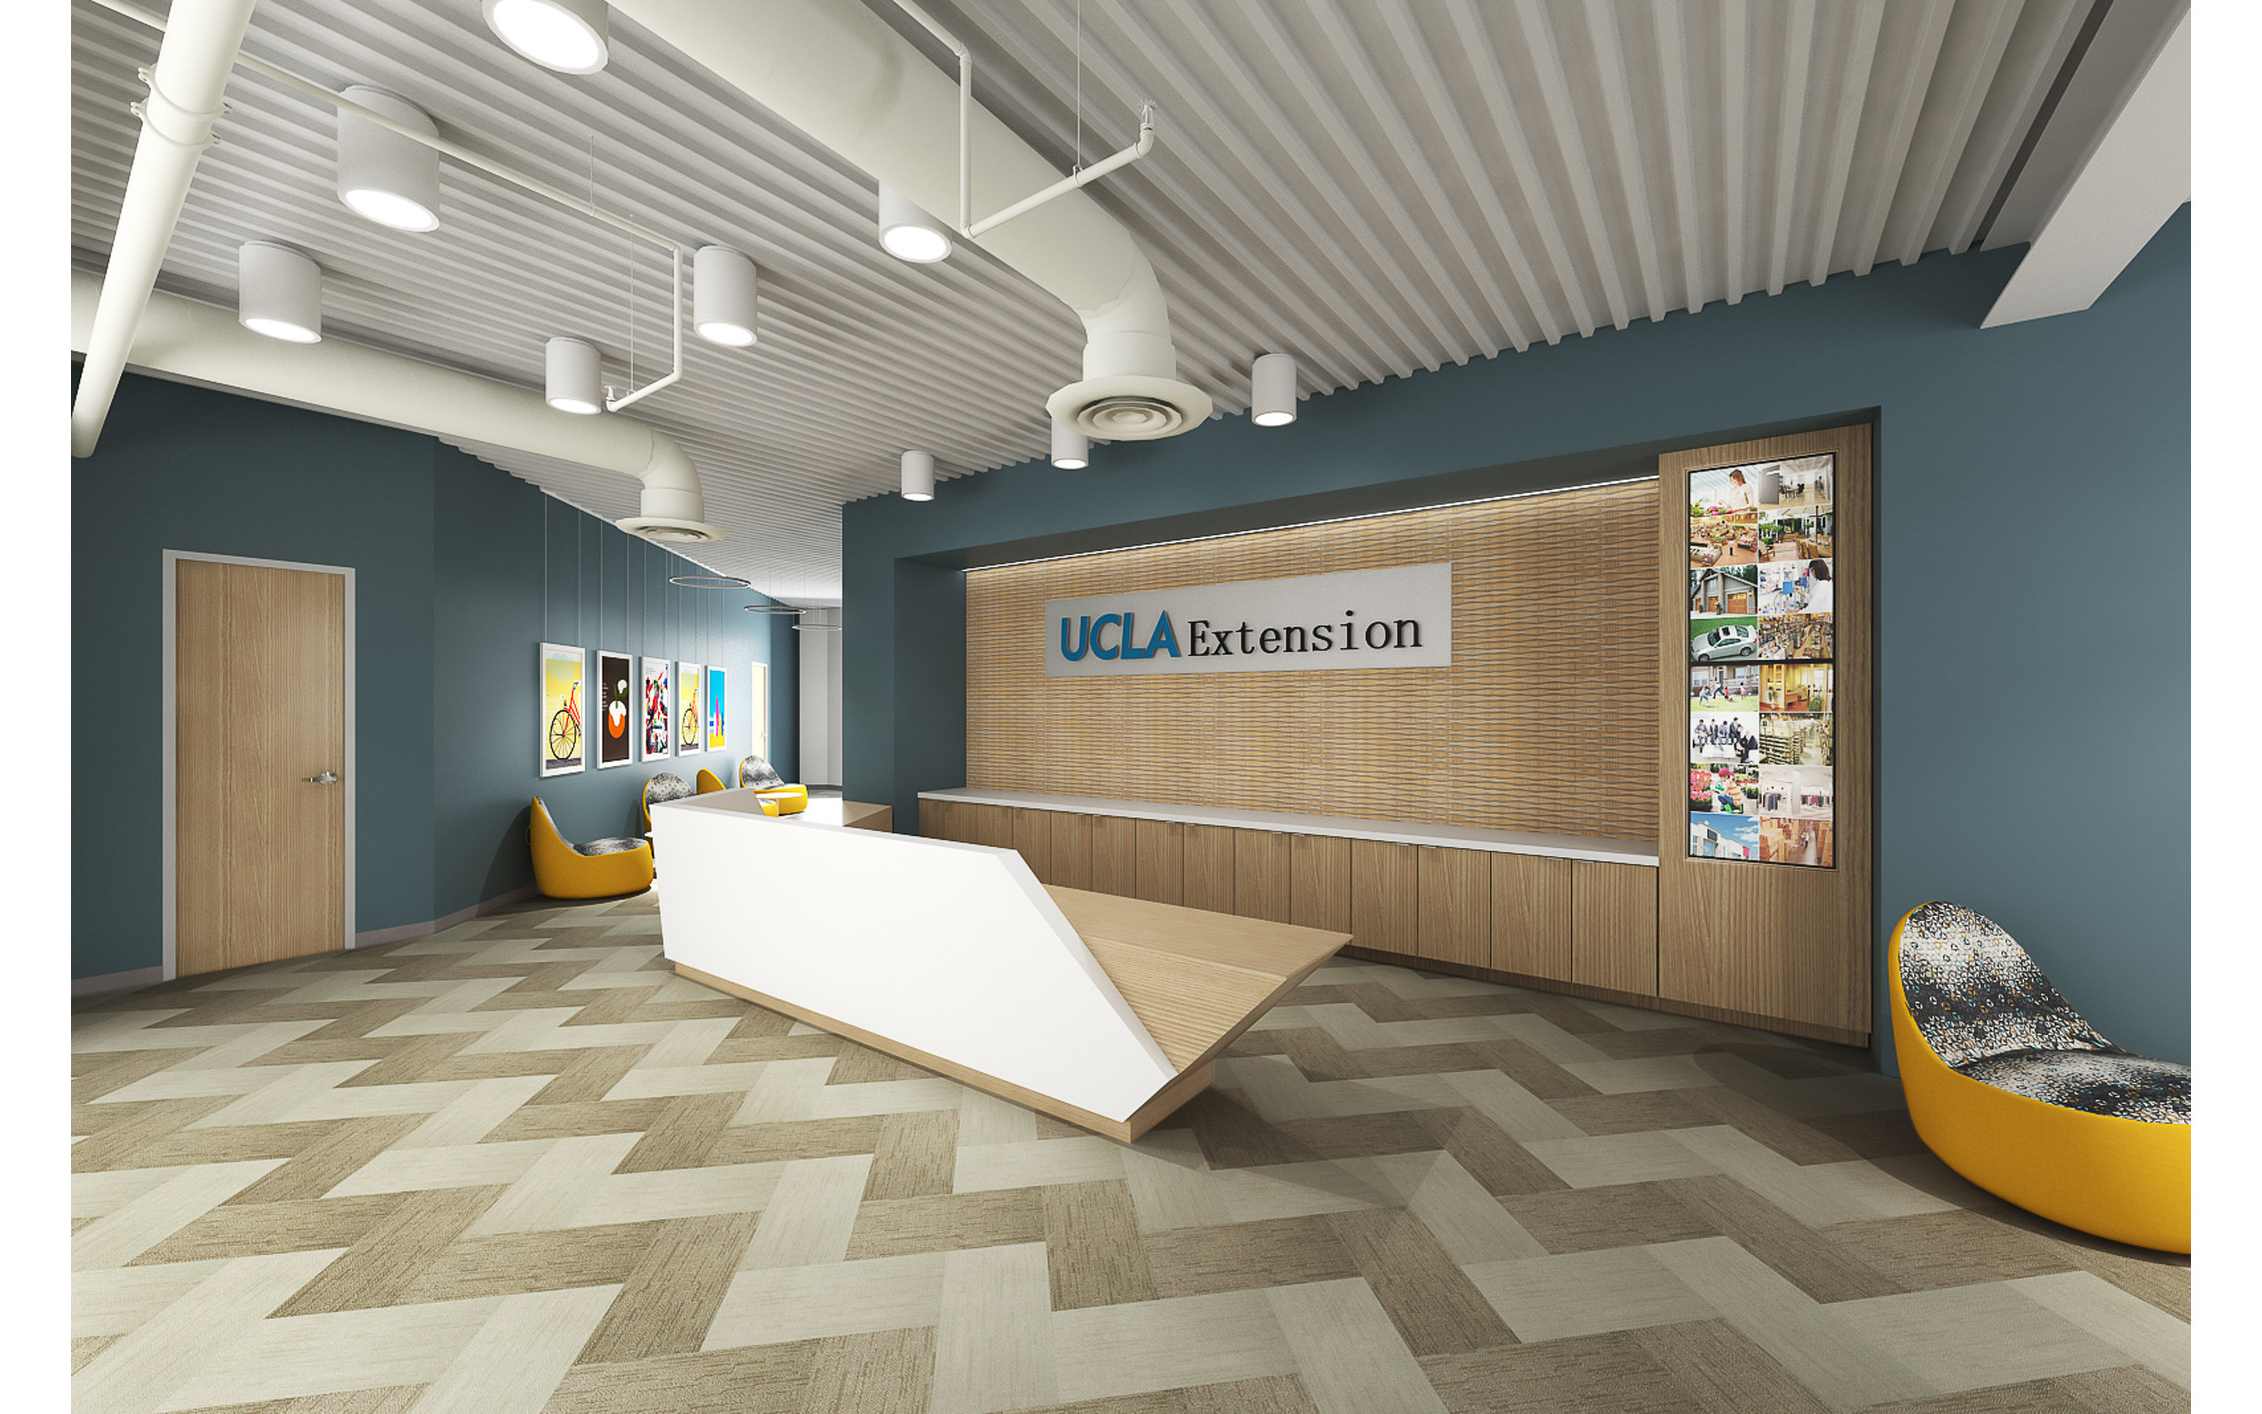 The new state-of-the-art UCLA Extension Woodland Hills location. (PRNewsfoto/UCLA Extension)